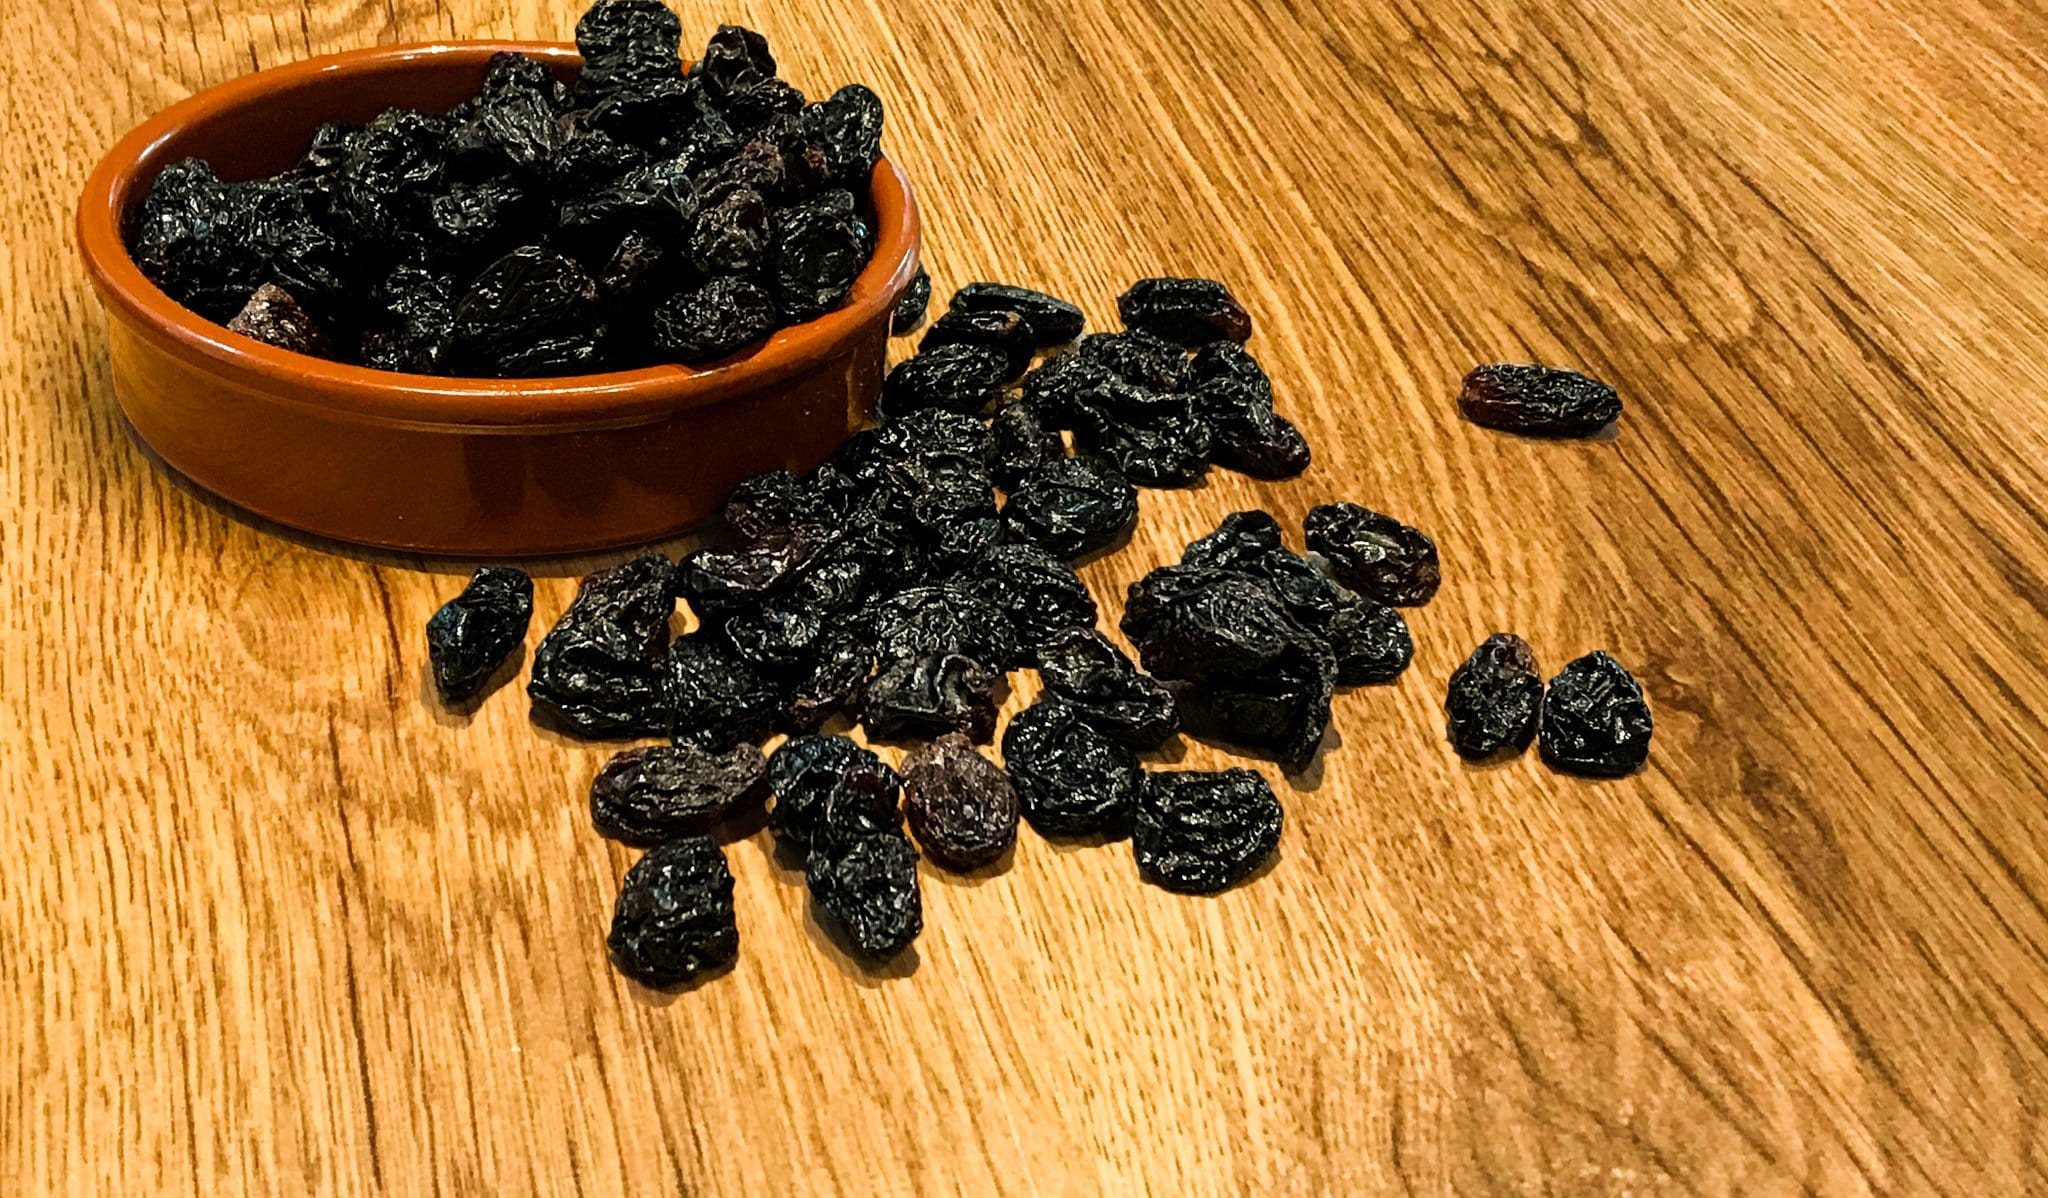 black flame jumbo raisin raisins dried fruit whole foods wholefoods health foods vegan plant based vegetarian diet superfood